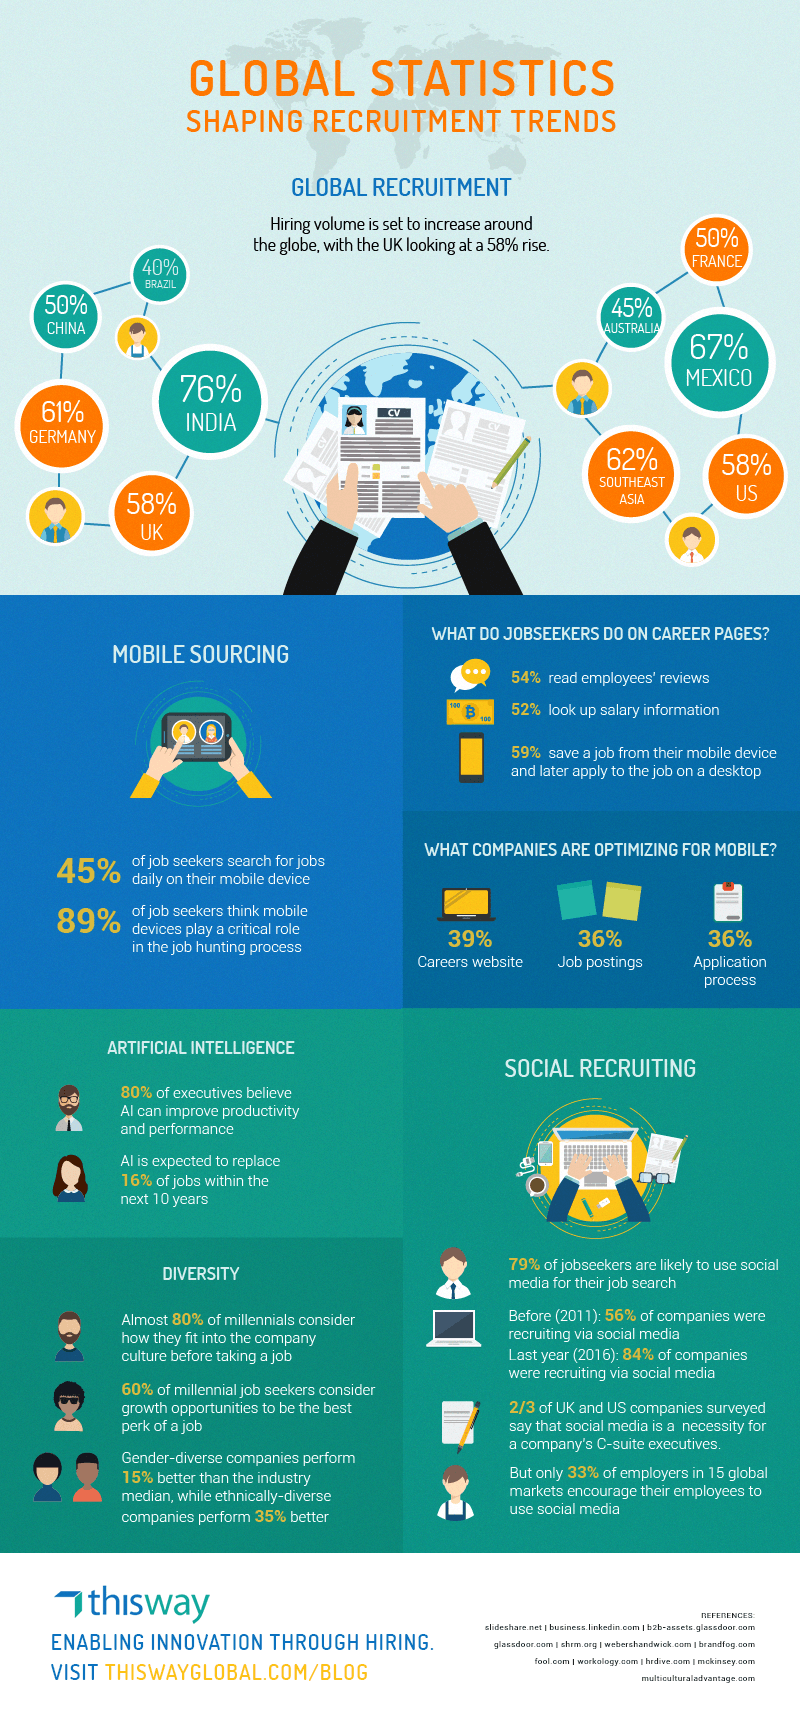 Global-Statistics-Shaping-Recruitment-Trends-Infographic-plaza